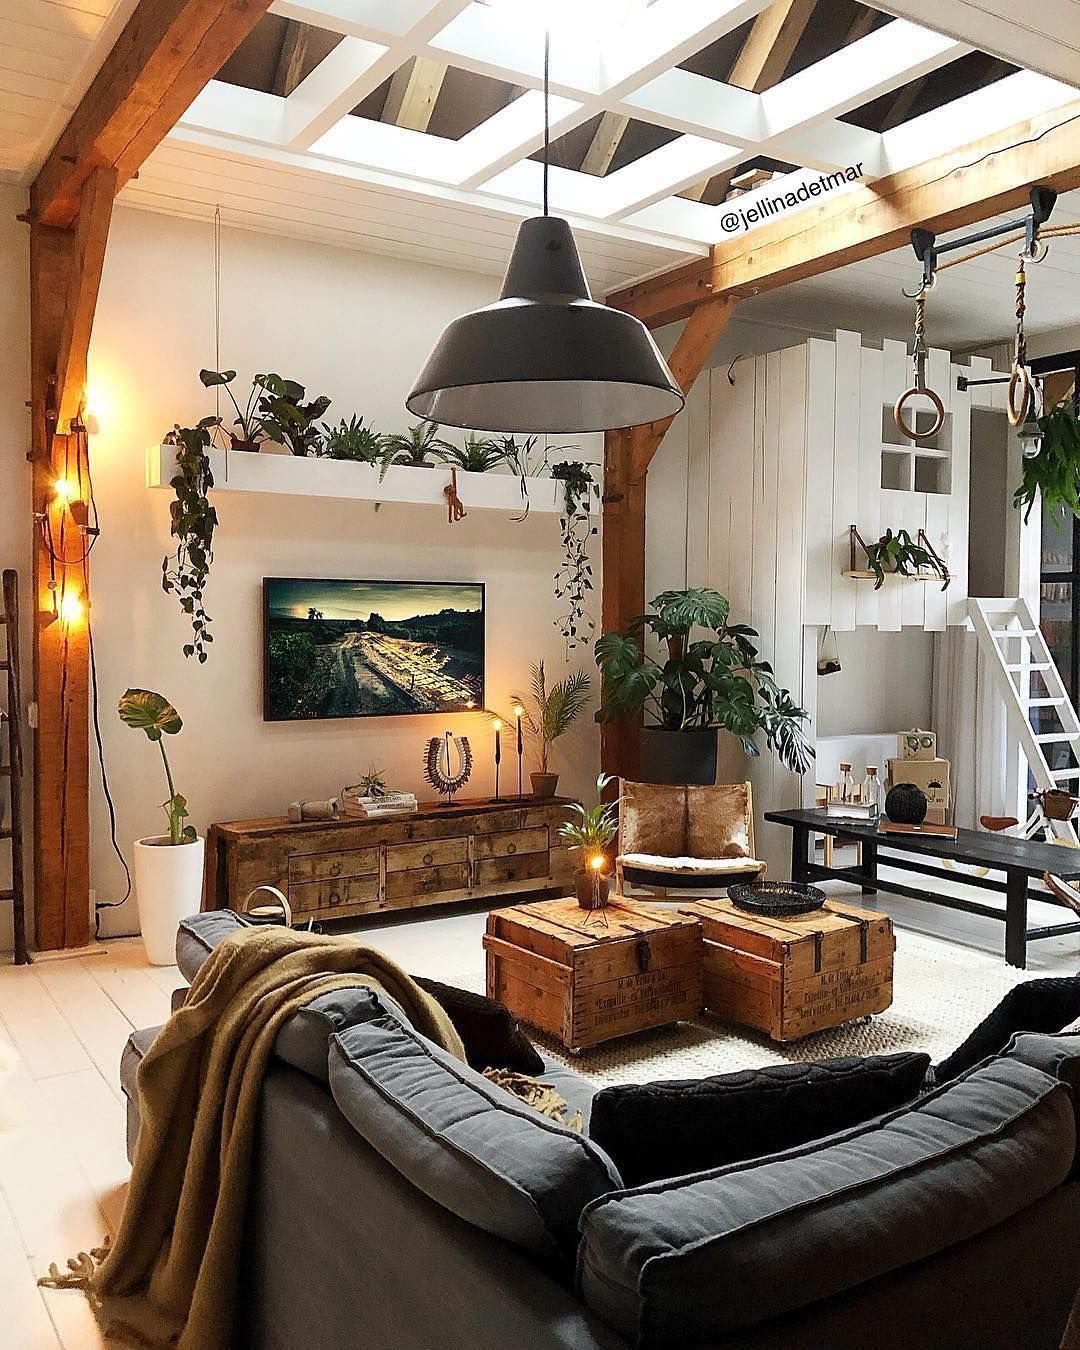 New The 10 Best Home Decor With Pictures Rate This Living Room Setup 1 10 Jelli Living Room Design Modern Small Modern Living Room Small Living Room #small #living #room #set #up